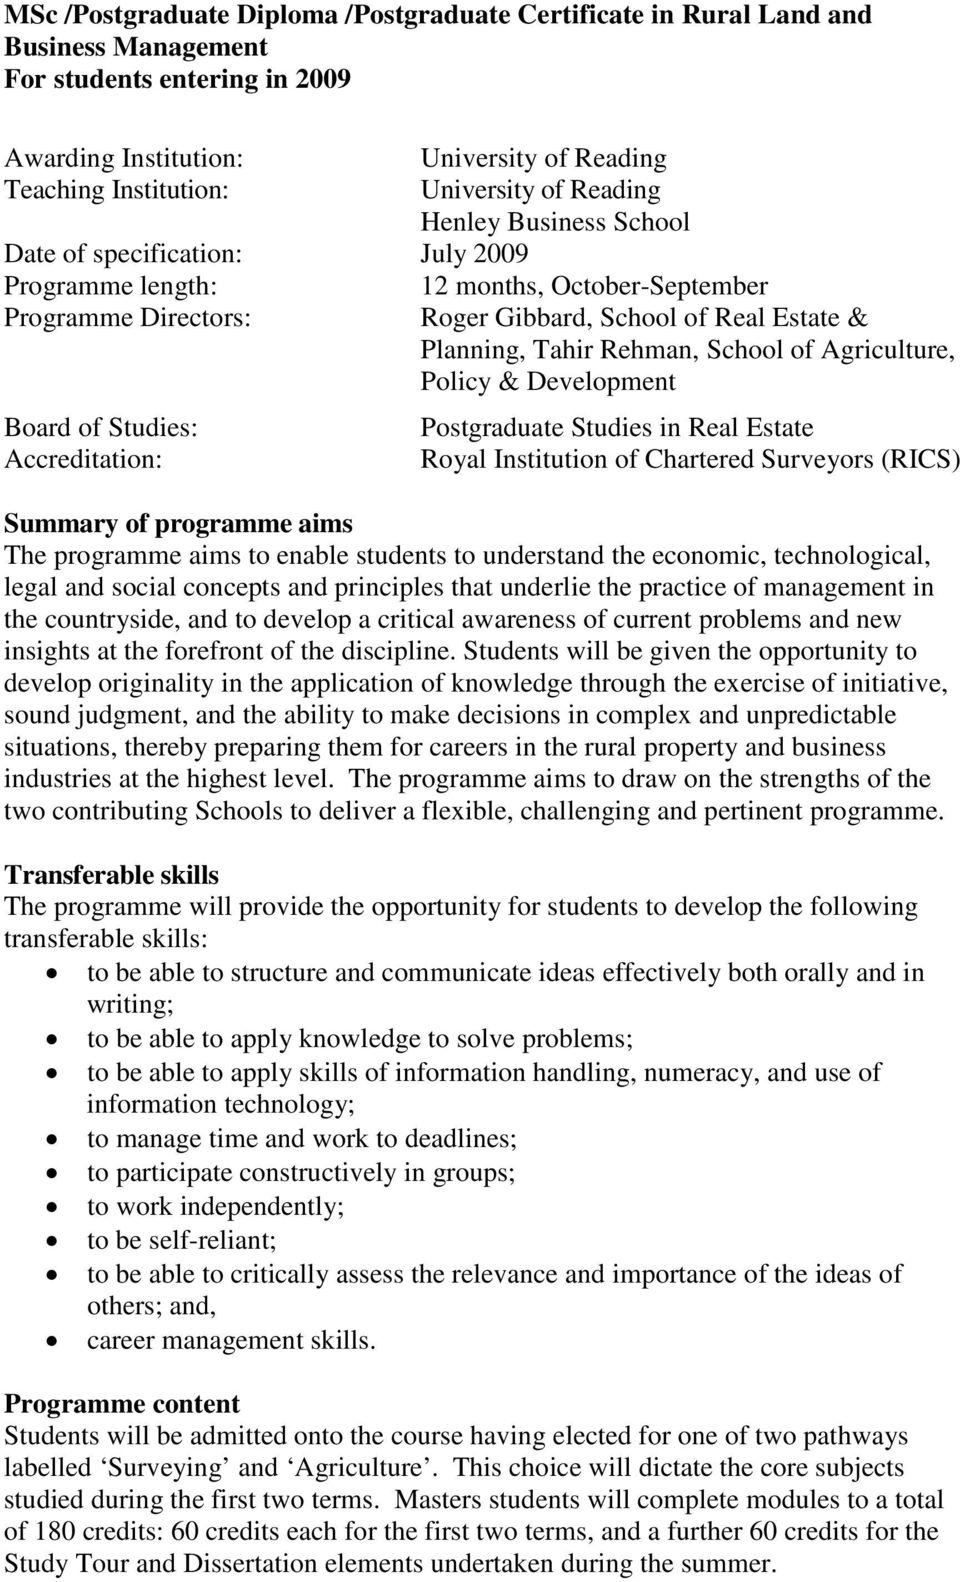 School of Agriculture, Policy & Development Board of Studies: Accreditation: Postgraduate Studies in Real Estate Royal Institution of Chartered Surveyors (RICS) Summary of programme aims The